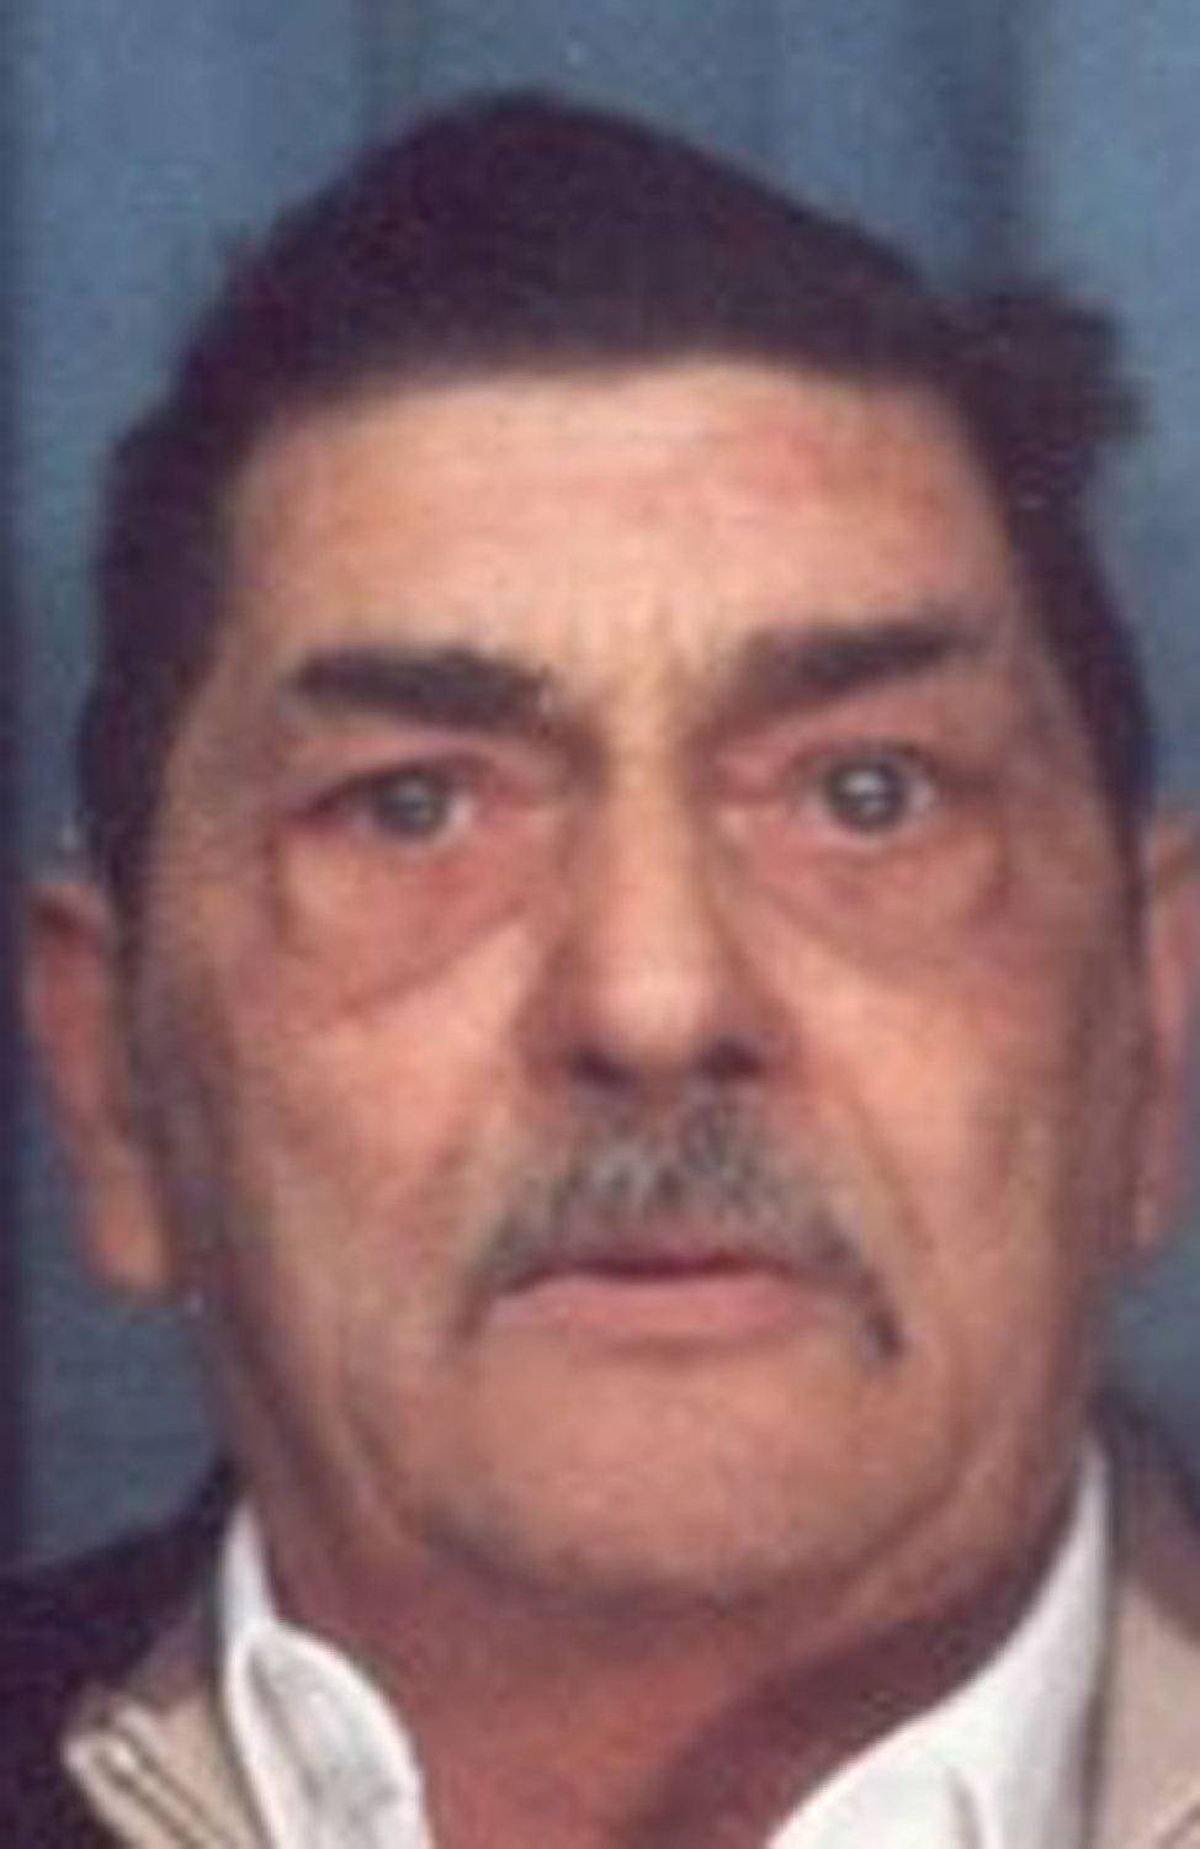 Ferenc Domotor Sr., 69, is kingpin Ferenc Domotor's father.